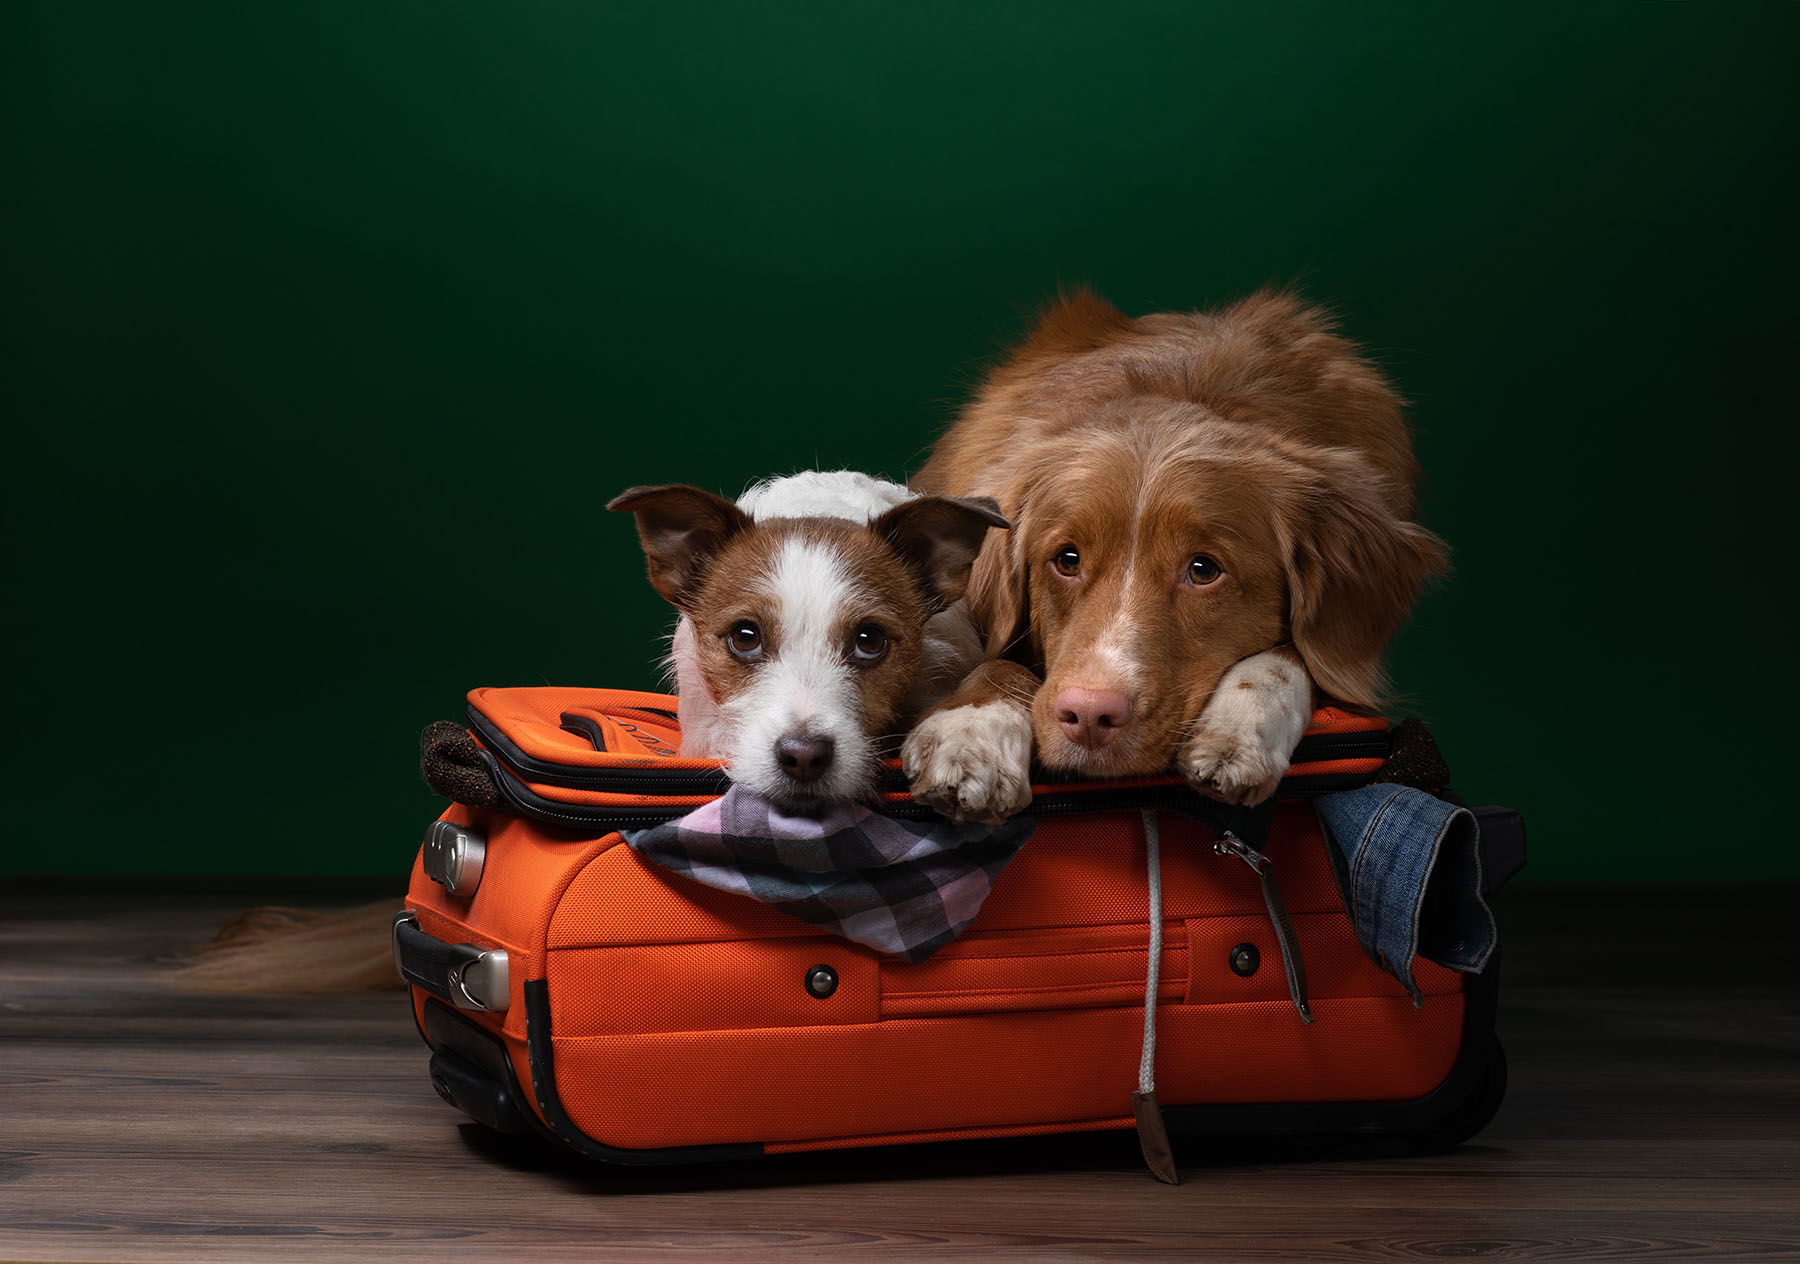 No Fly Zone: It's Time To Leave Your Fake Service Animal At Home